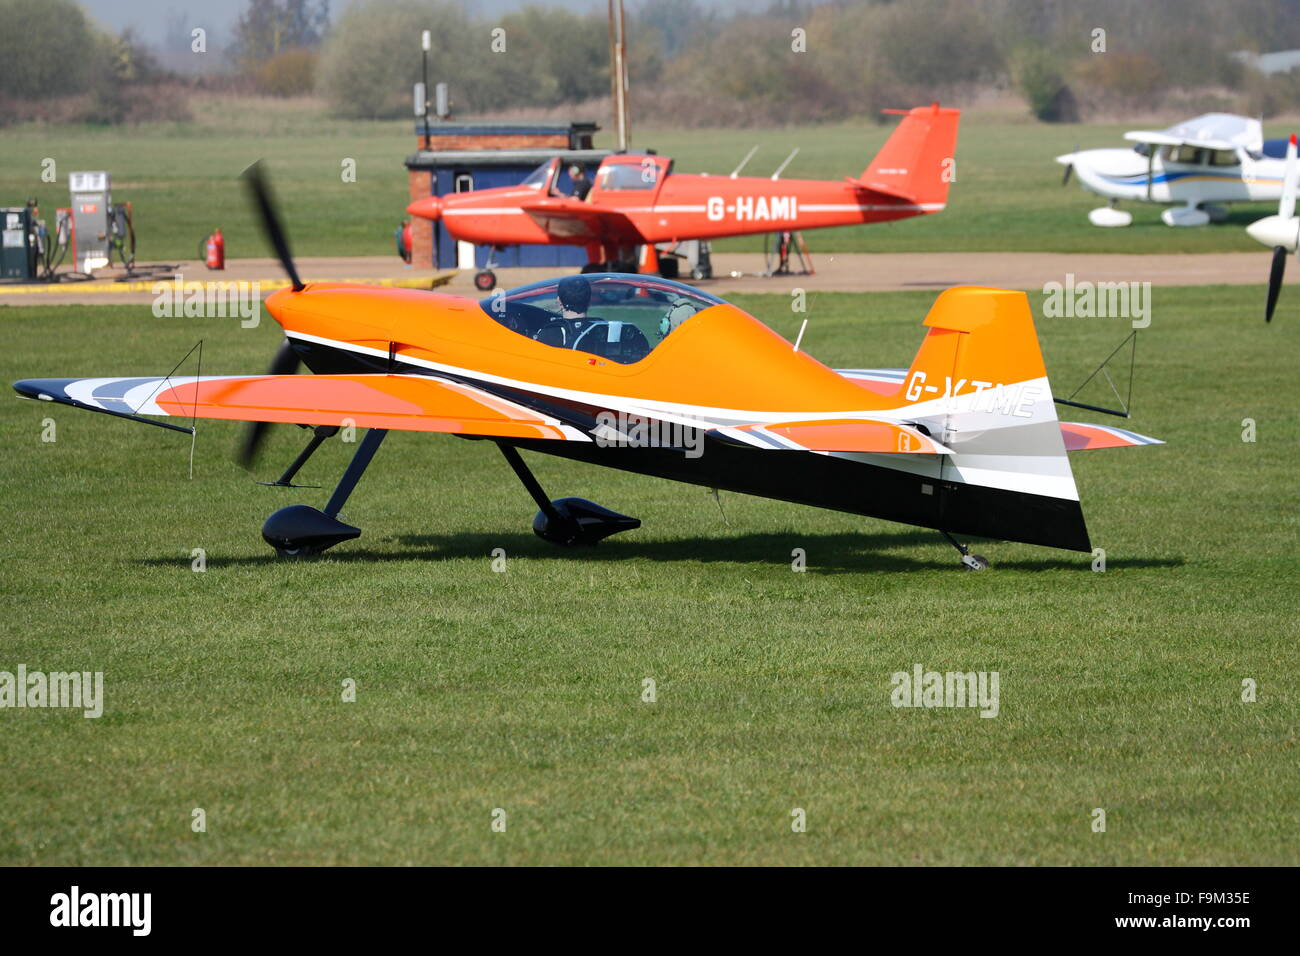 XtremeAir Sbach 342 at White Waltham Airfield ready for take off - Stock Image